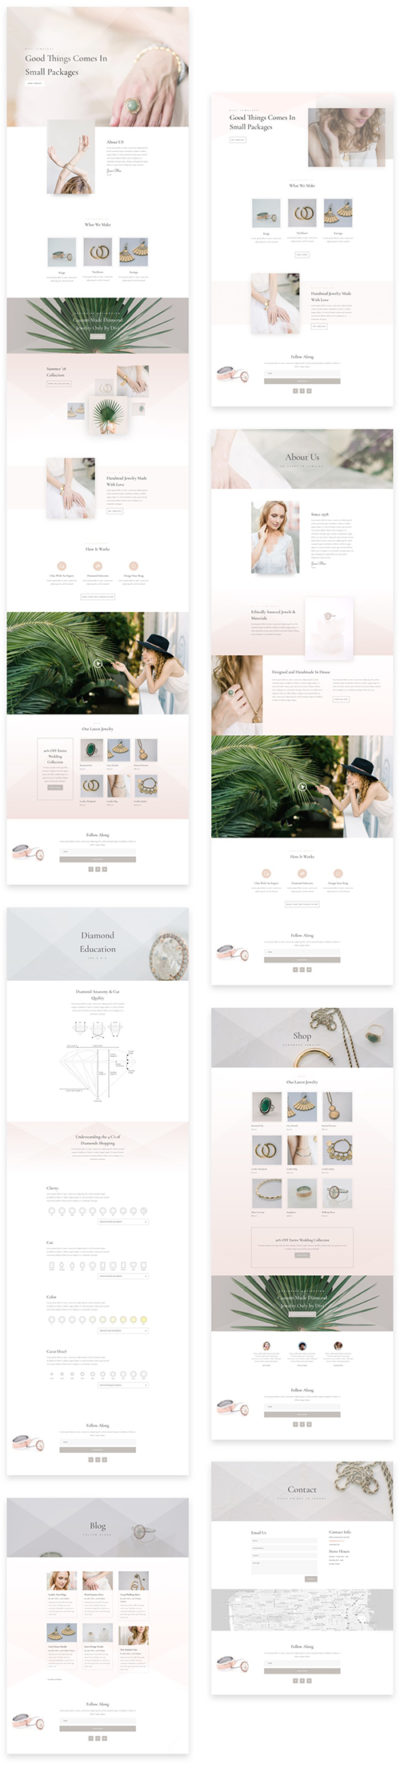 divi layout for jewellery store